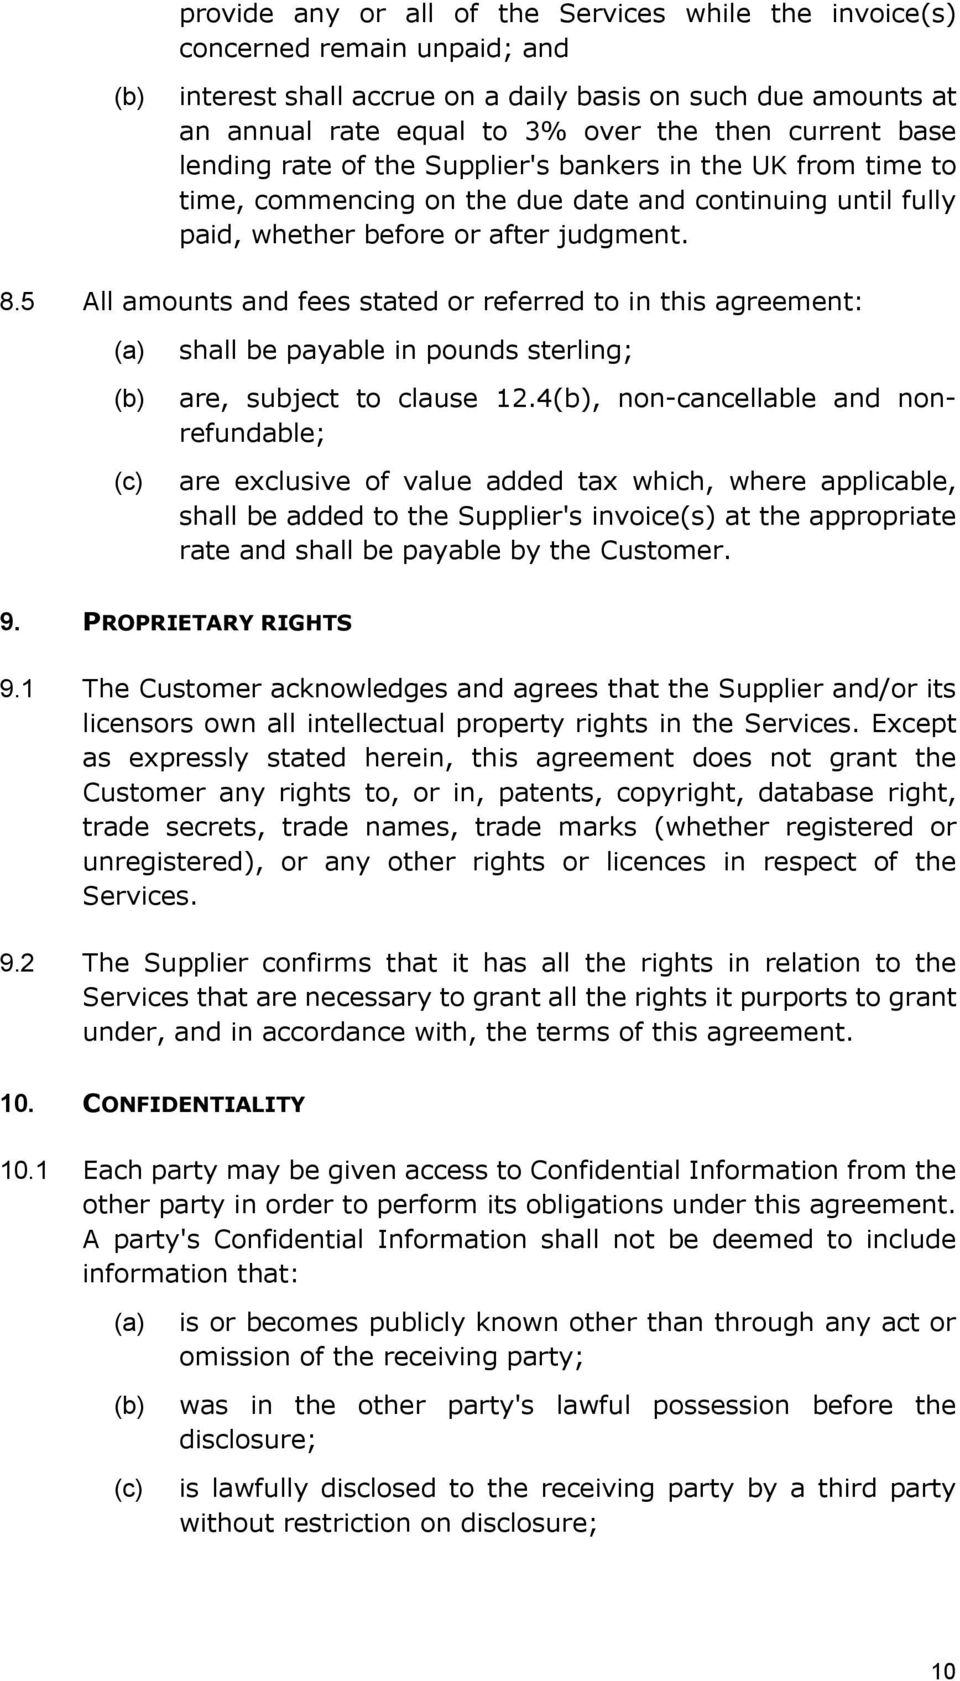 5 All amounts and fees stated or referred to in this agreement: shall be payable in pounds sterling; are, subject to clause 12.